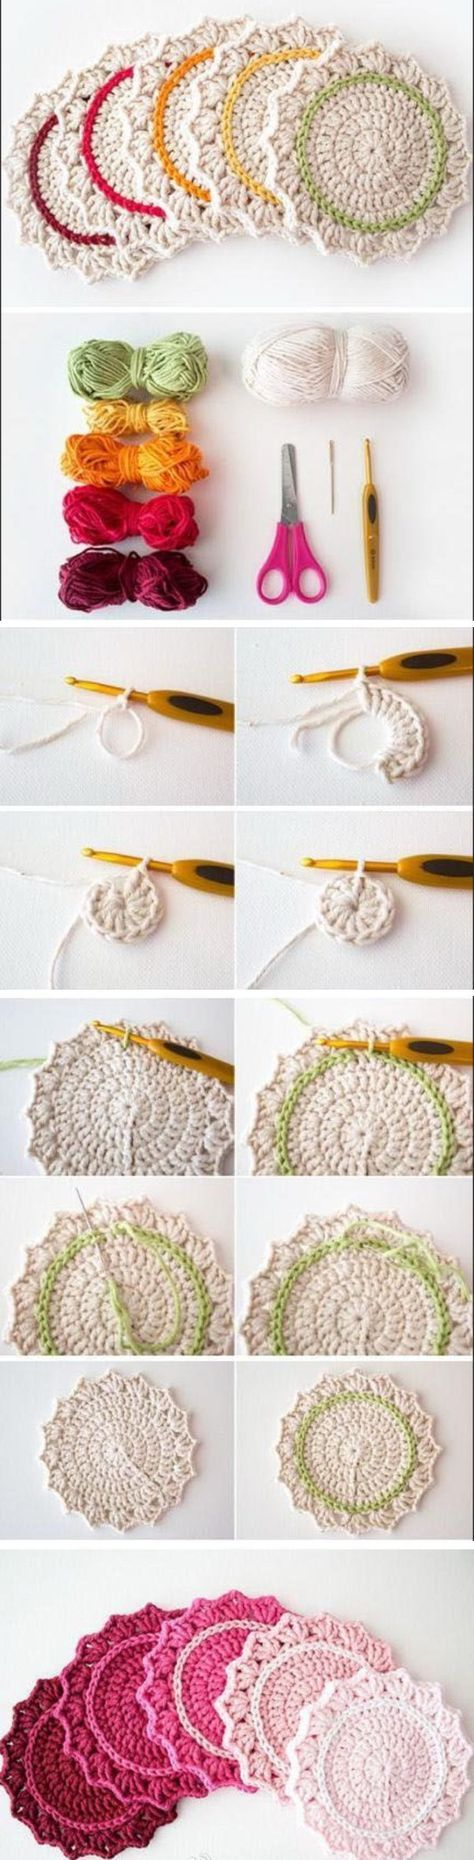 20 amazing free crochet patterns that any beginner can make 20 amazing free crochet patterns that any beginner can make bankloansurffo Gallery